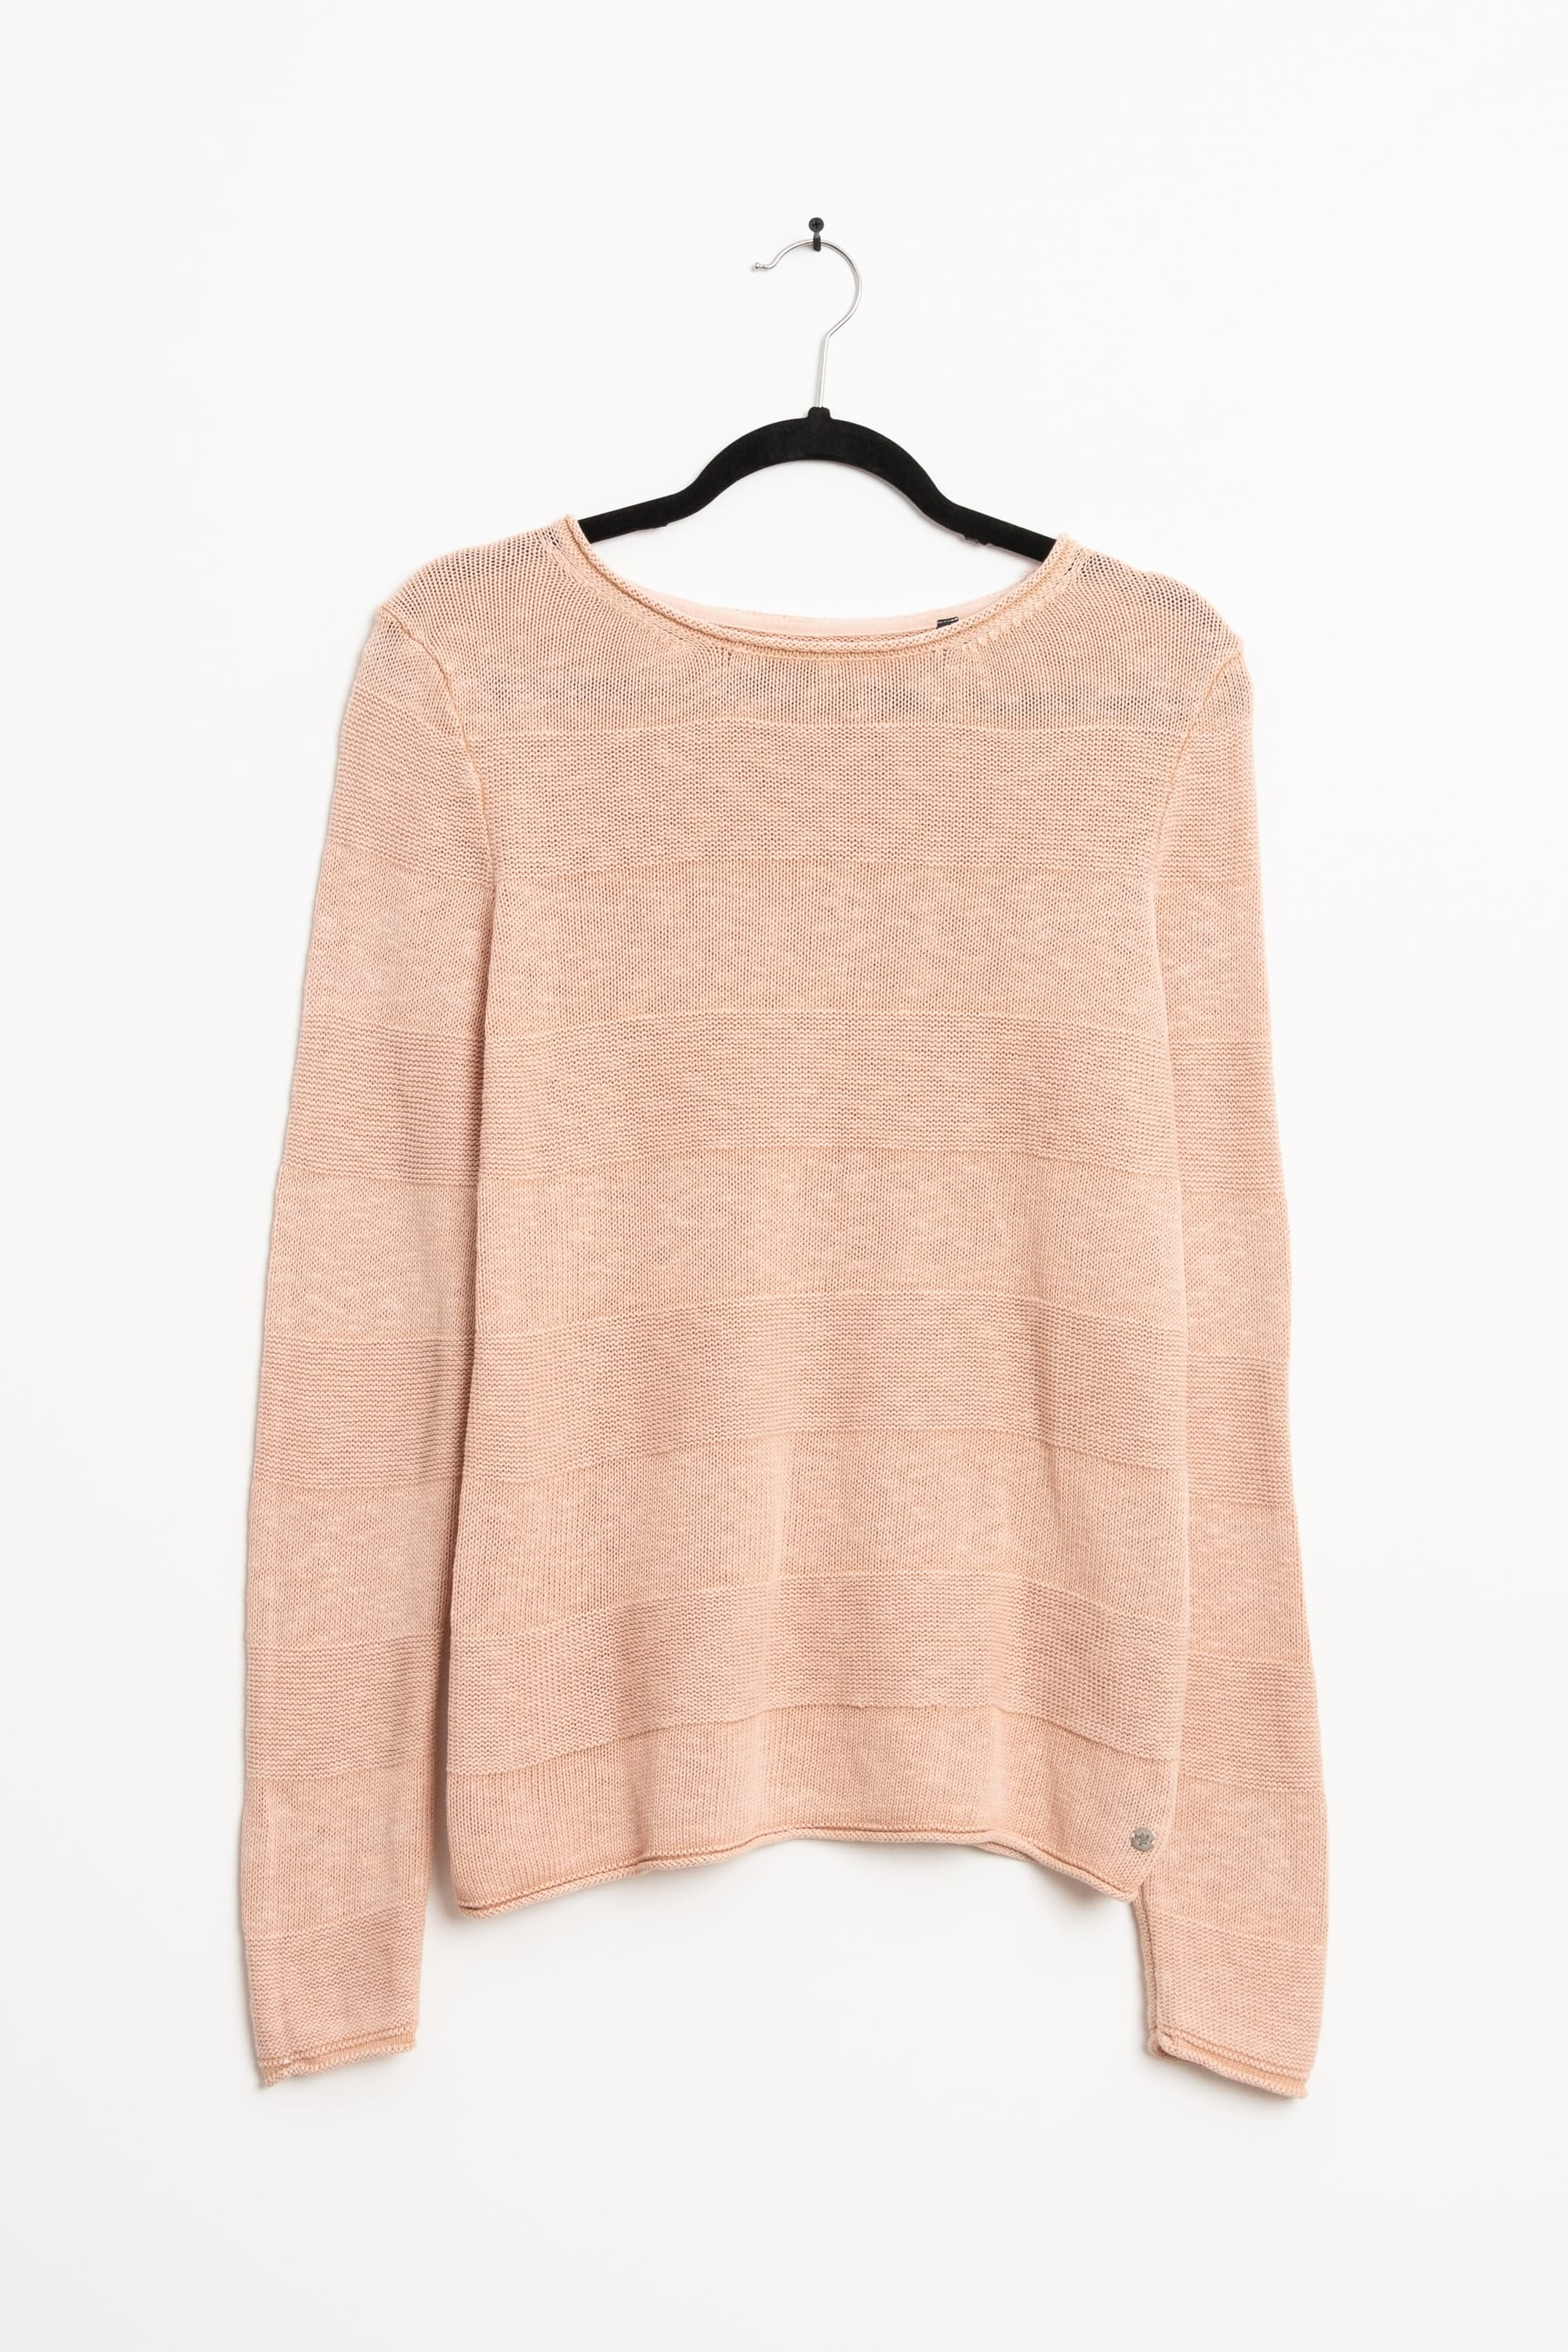 Marc O'Polo Strickpullover Pink Gr.M